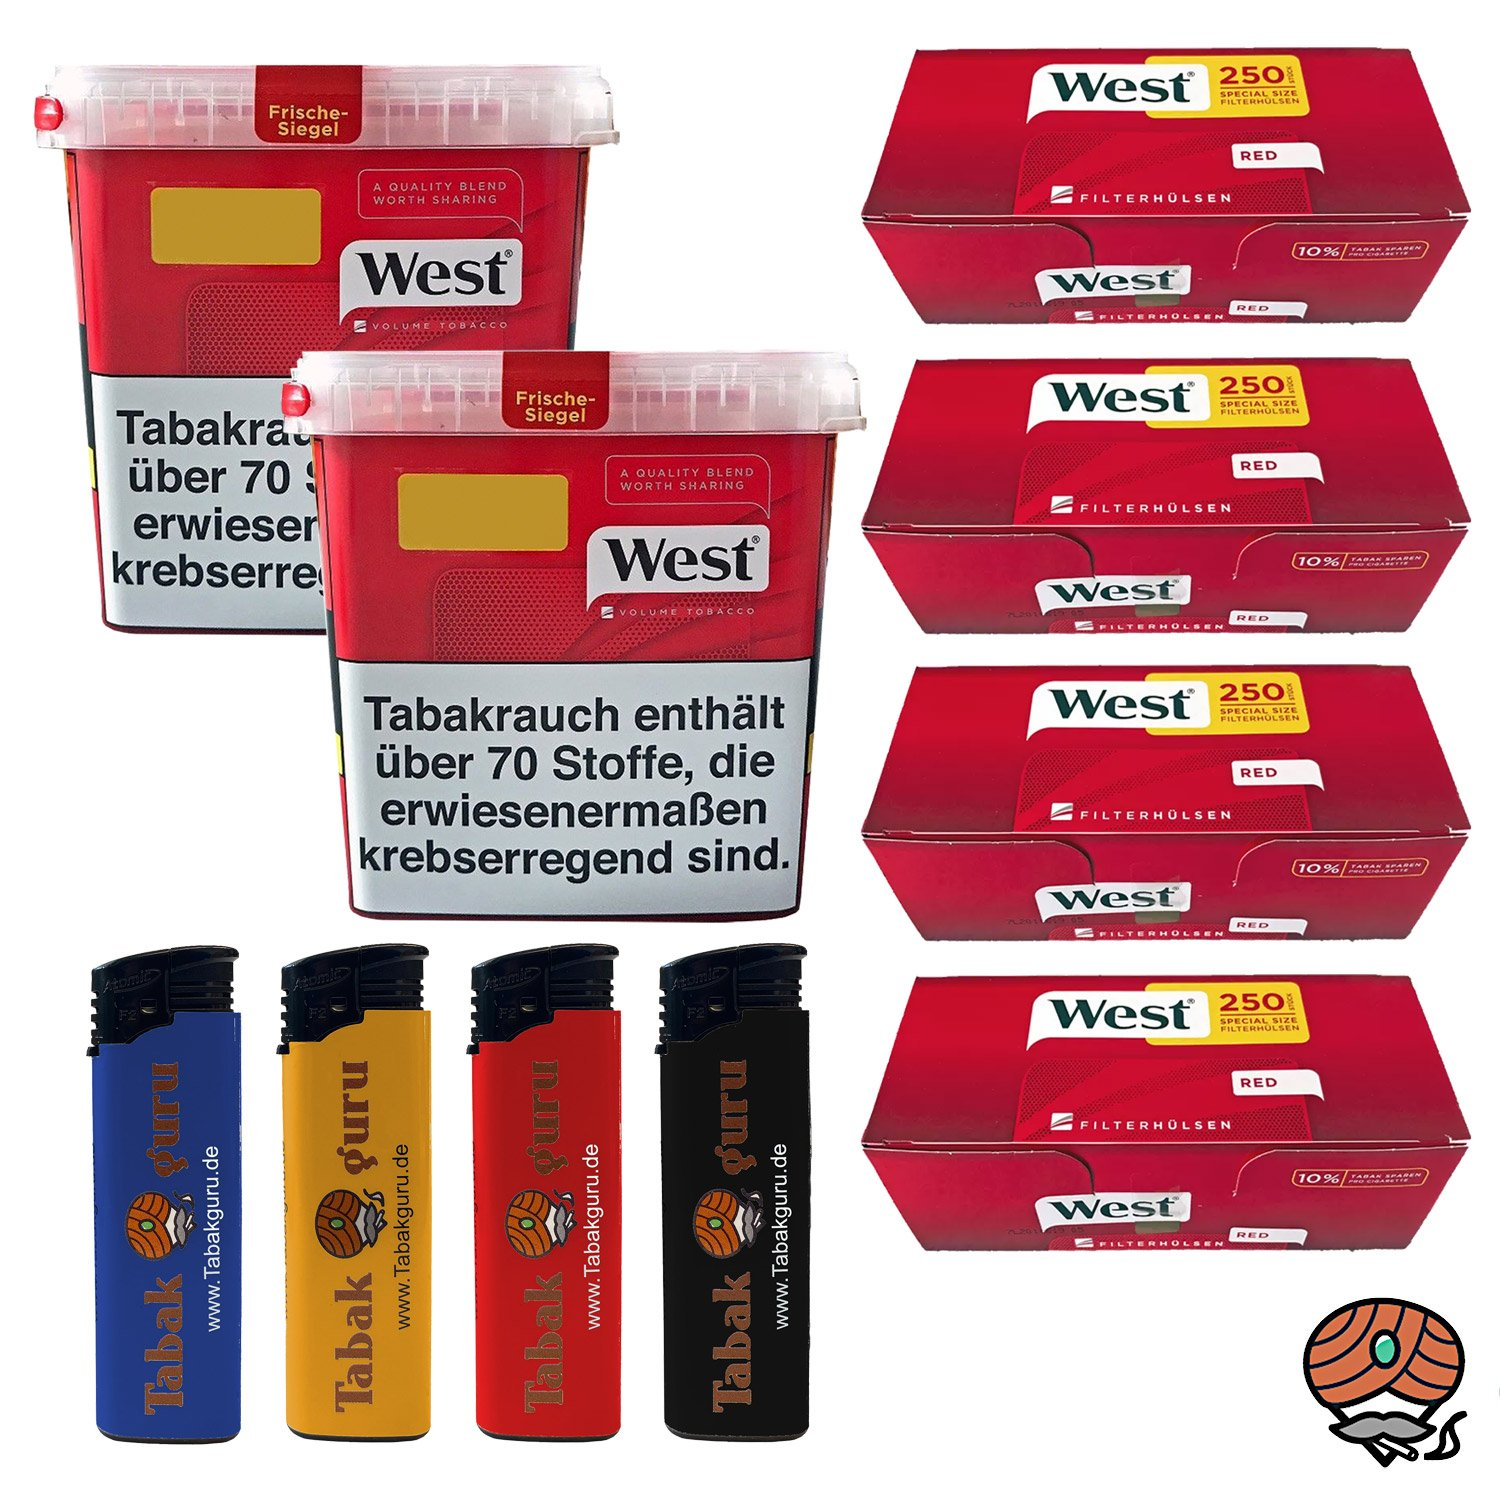 2 x West Red Tabak /Volumentabak Mega Box 280 g, 1000 West Extra Hülsen, Feuerzeuge